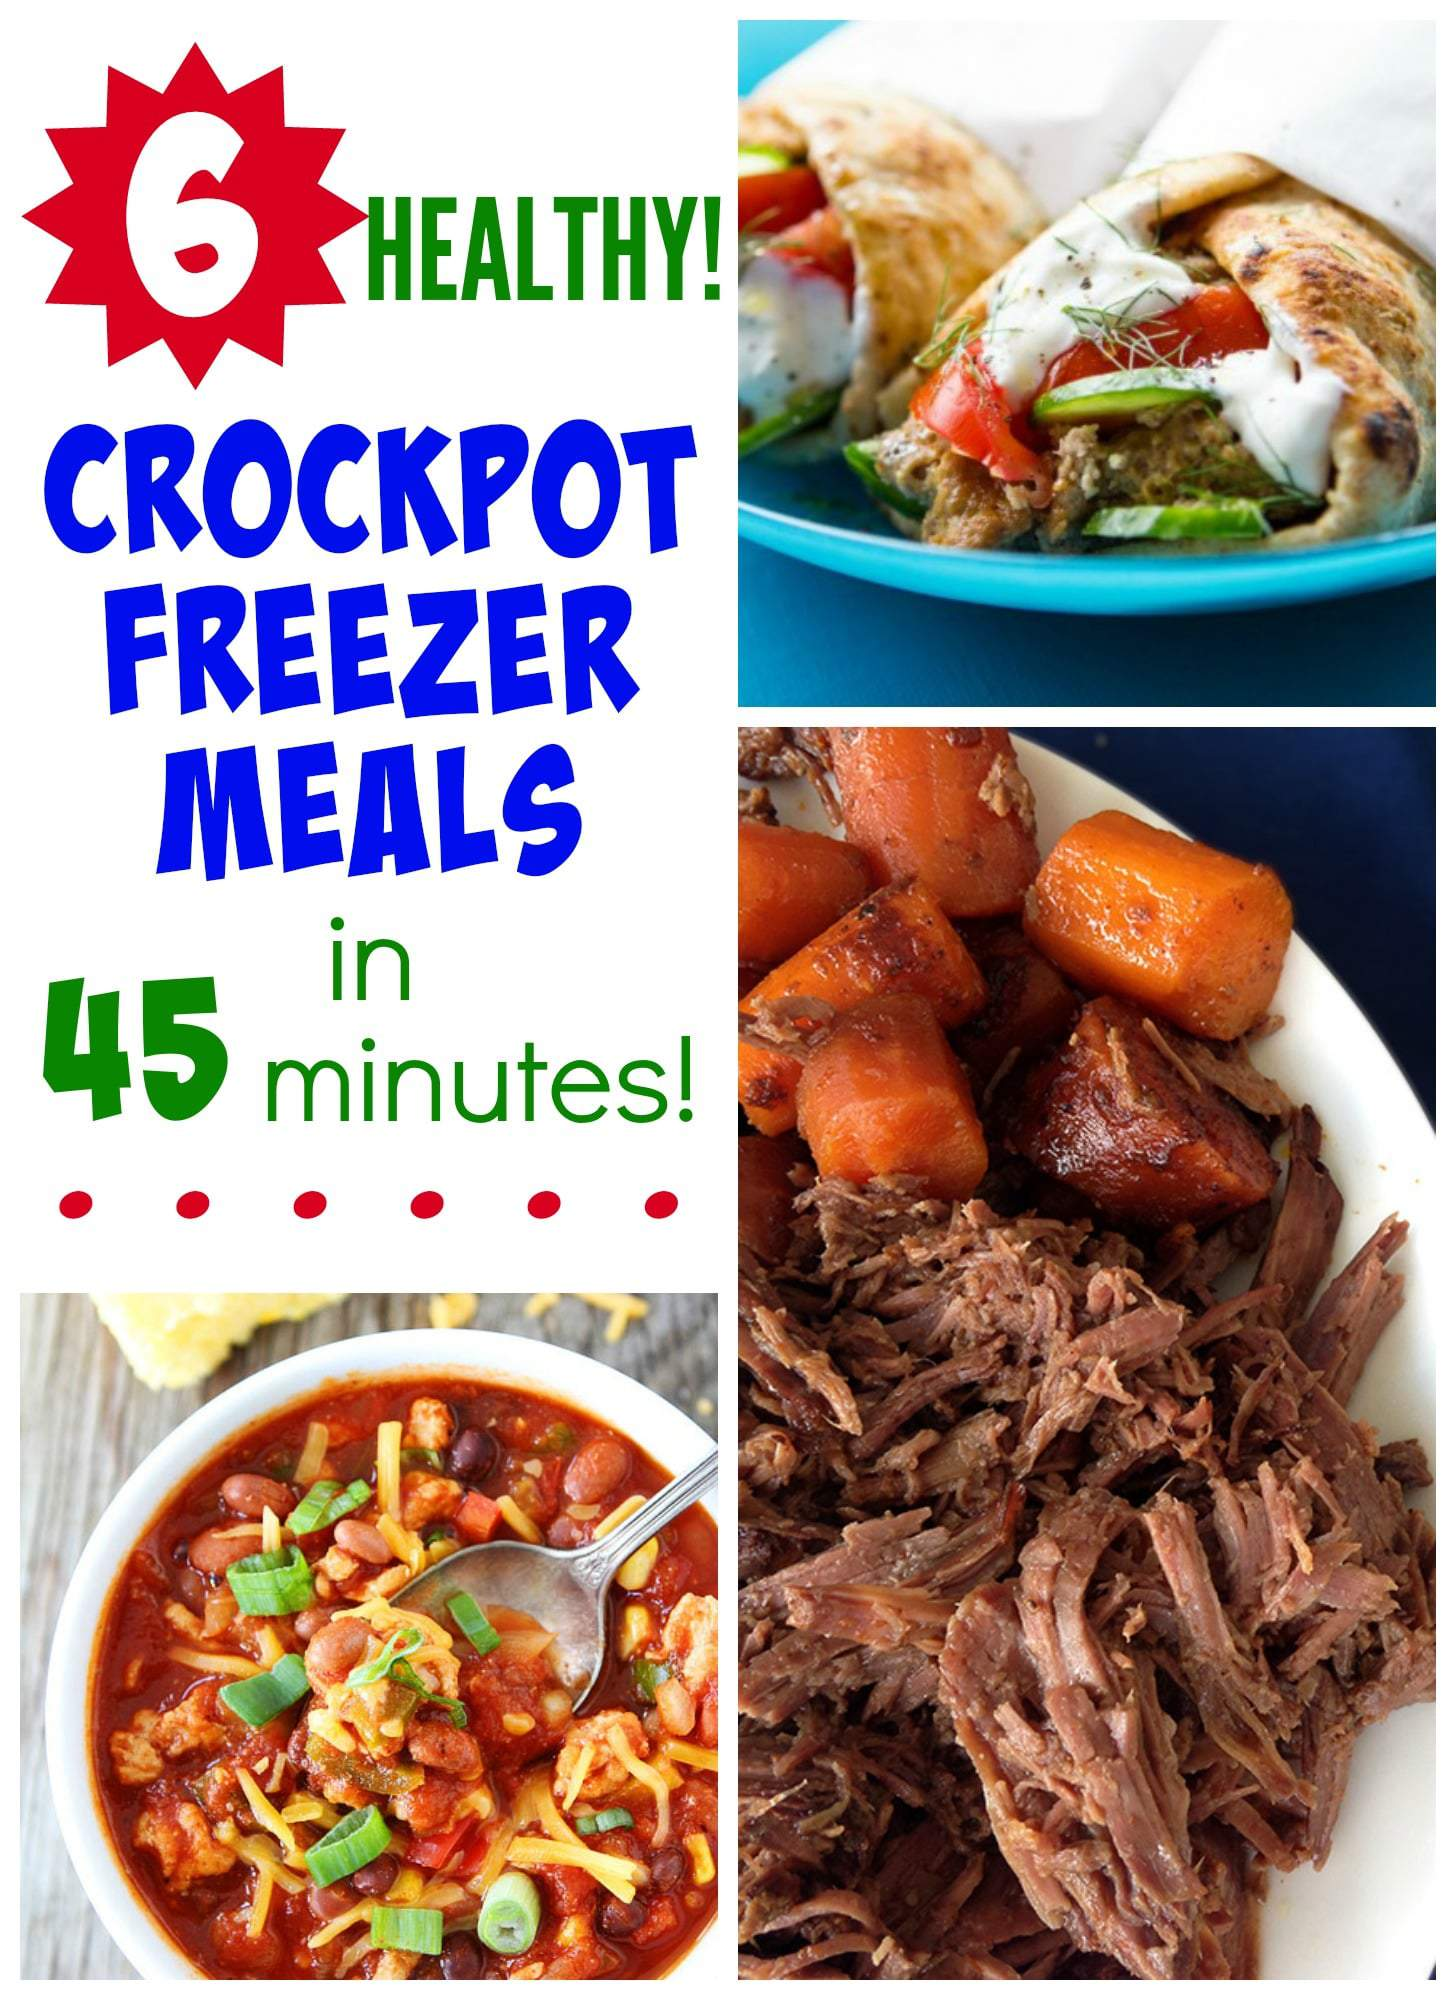 Printable healthy freezer to slow cooker meals include 4 vegetarian recipes, 4 chicken dishes, and 2 beef. The serving size for each meal is 6 to 8 people.